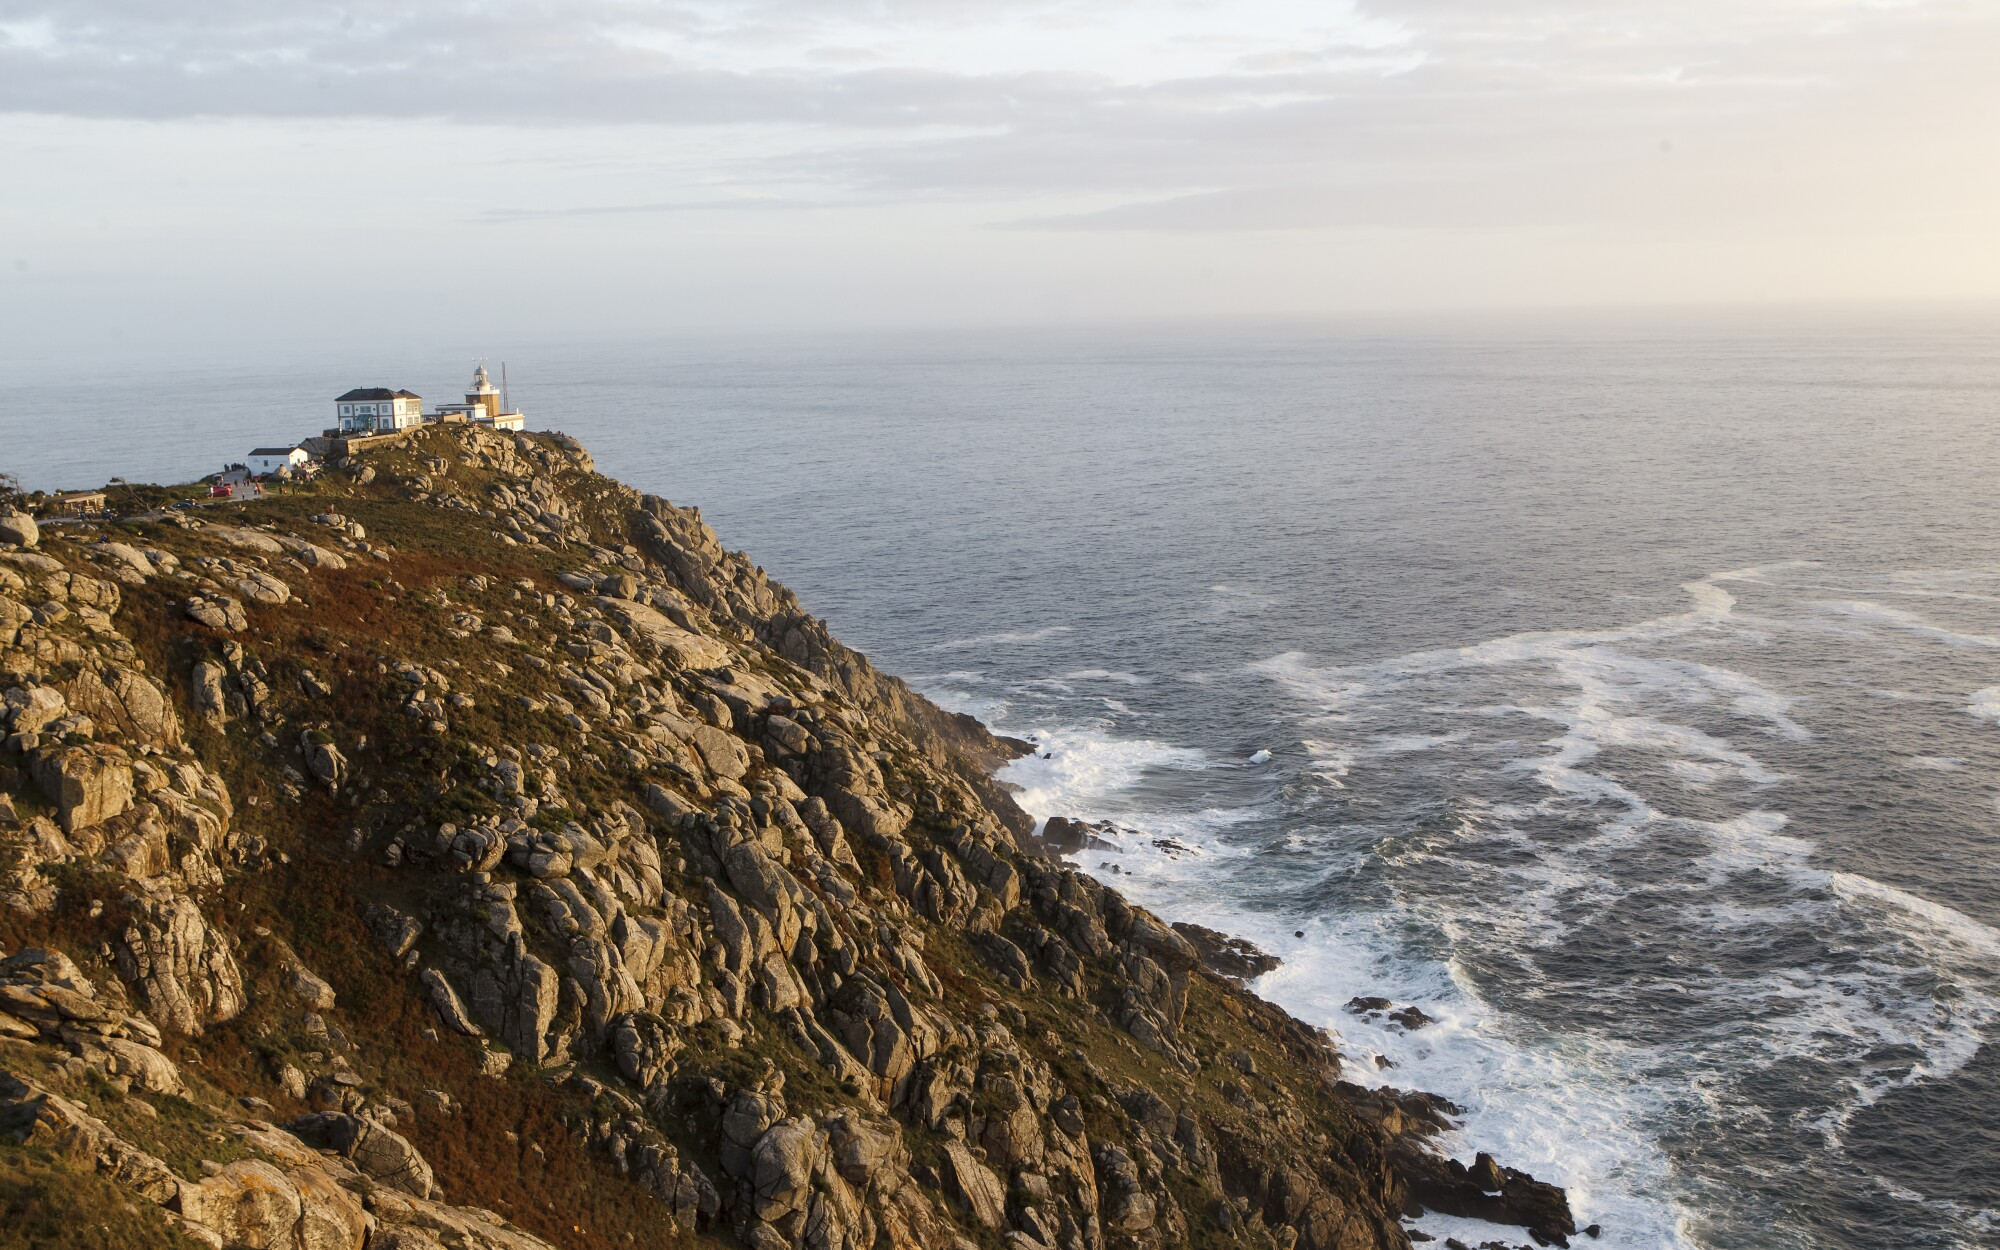 Finding peace and harmony at the 'End of the Earth' - Los Angeles Times